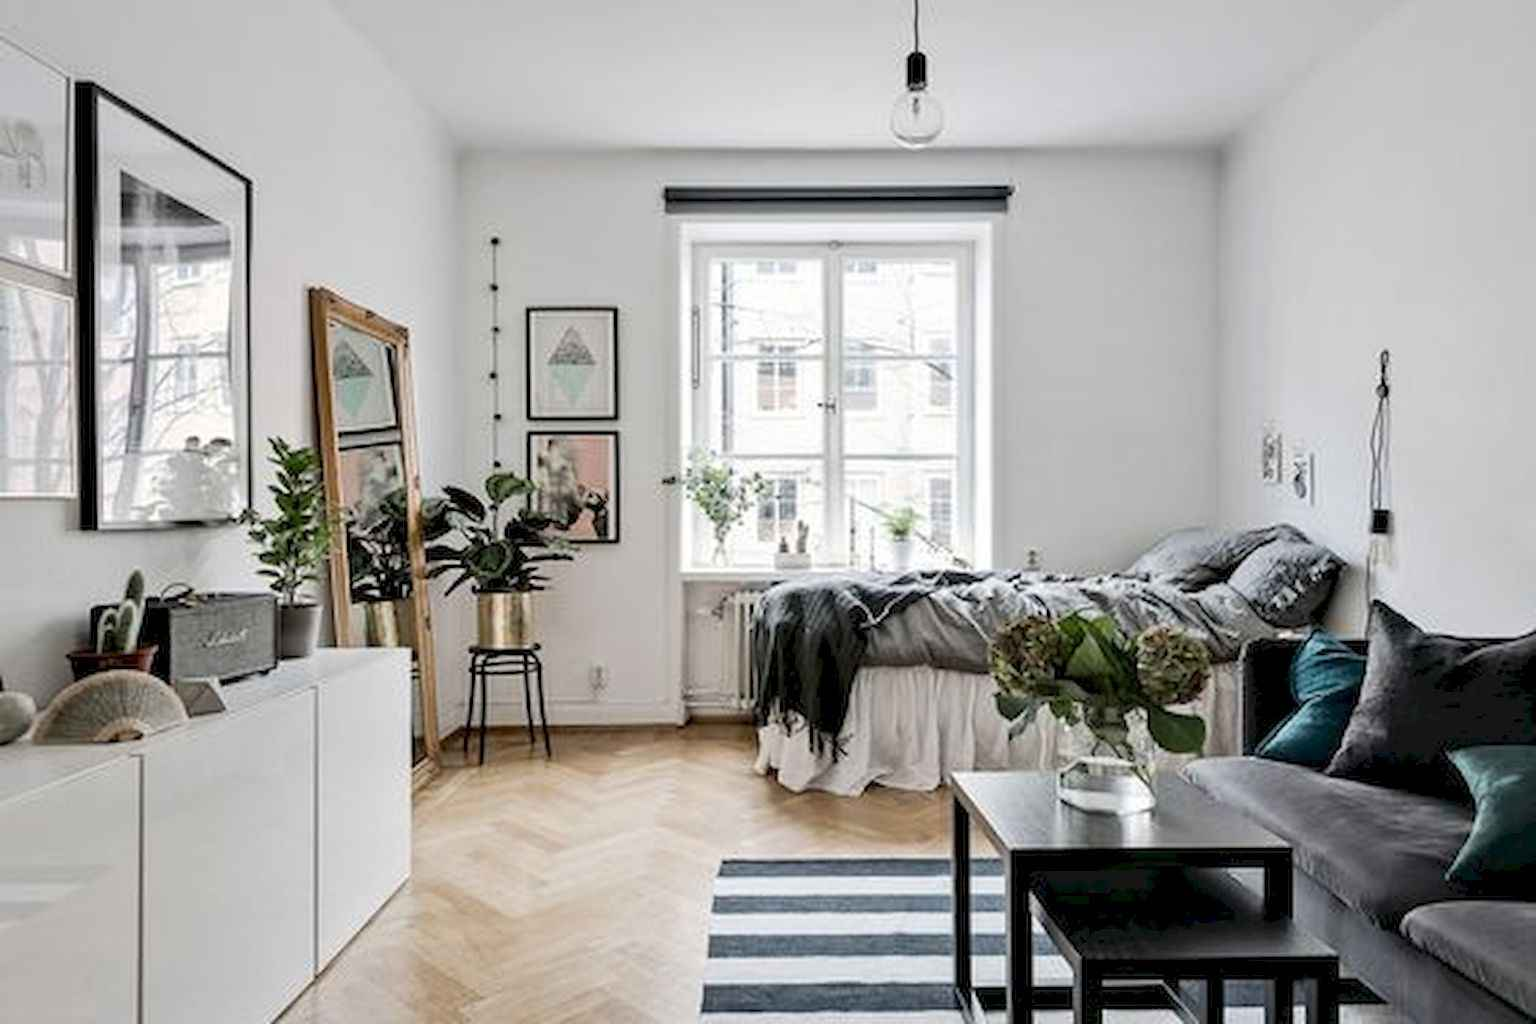 Cool small apartment decorating ideas on a budget (52)